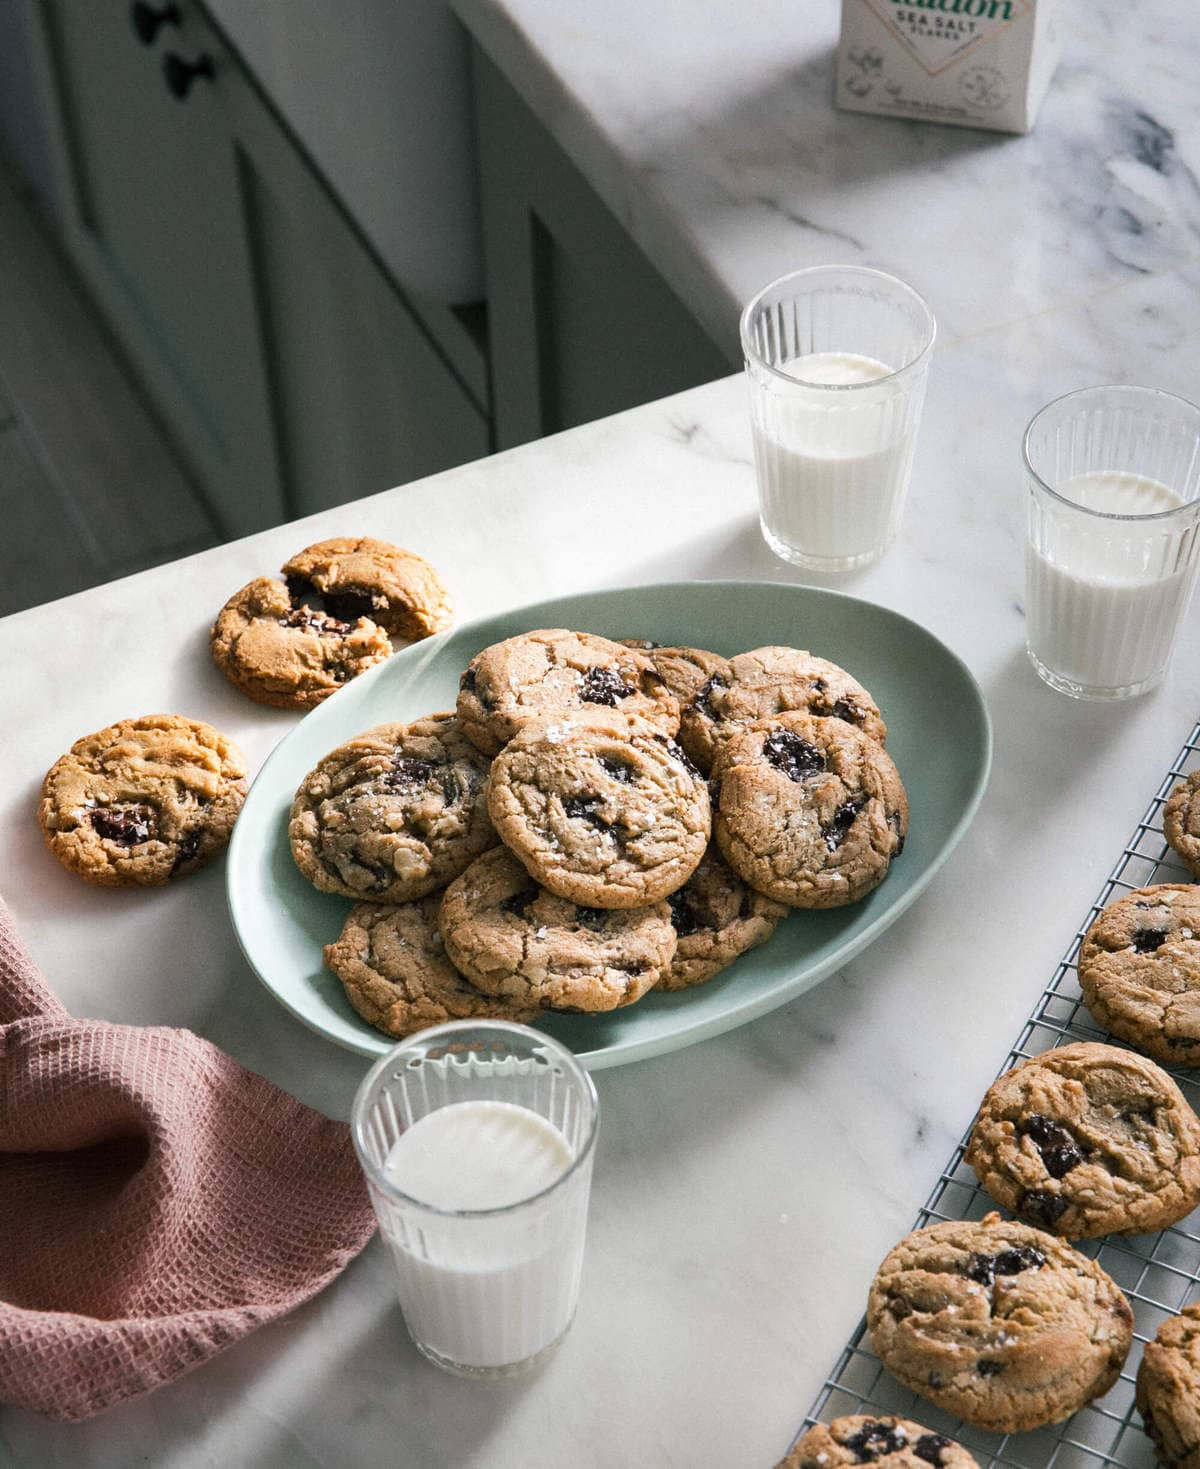 Brown Butter Chocolate Chip Cookies with Walnuts